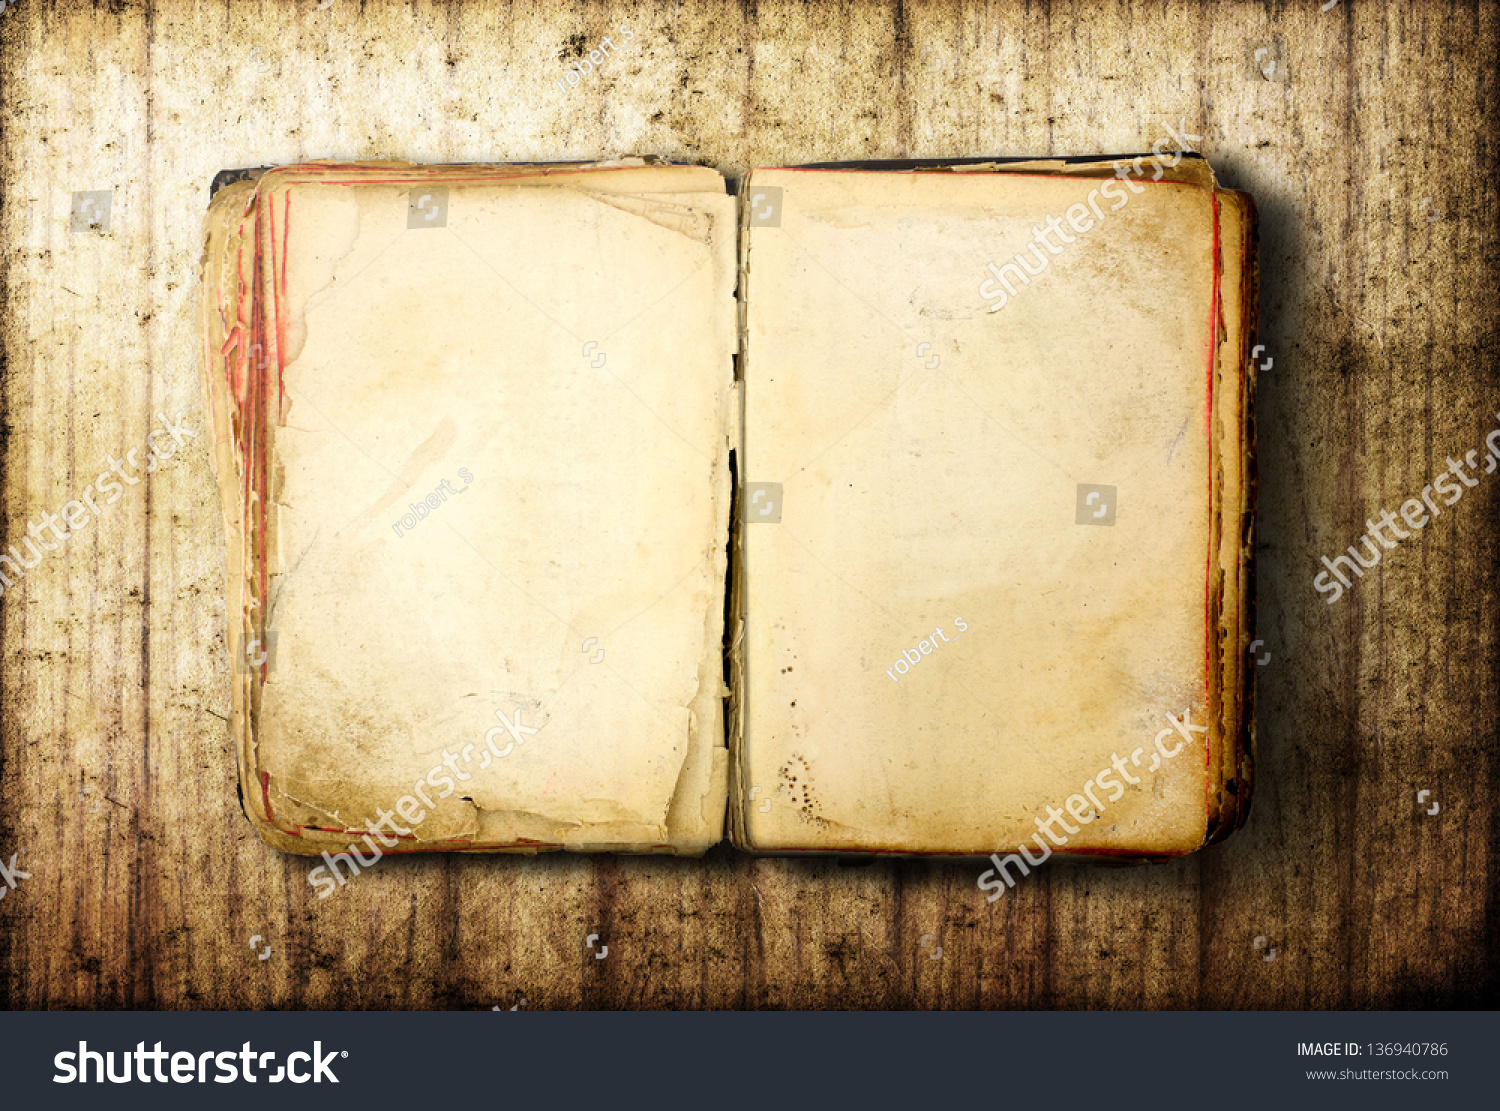 ... Book Blank On Old Wood Background Stock Photo 136940786 : Shutterstock: www.shutterstock.com/pic-136940786/stock-photo-open-book-blank-on...